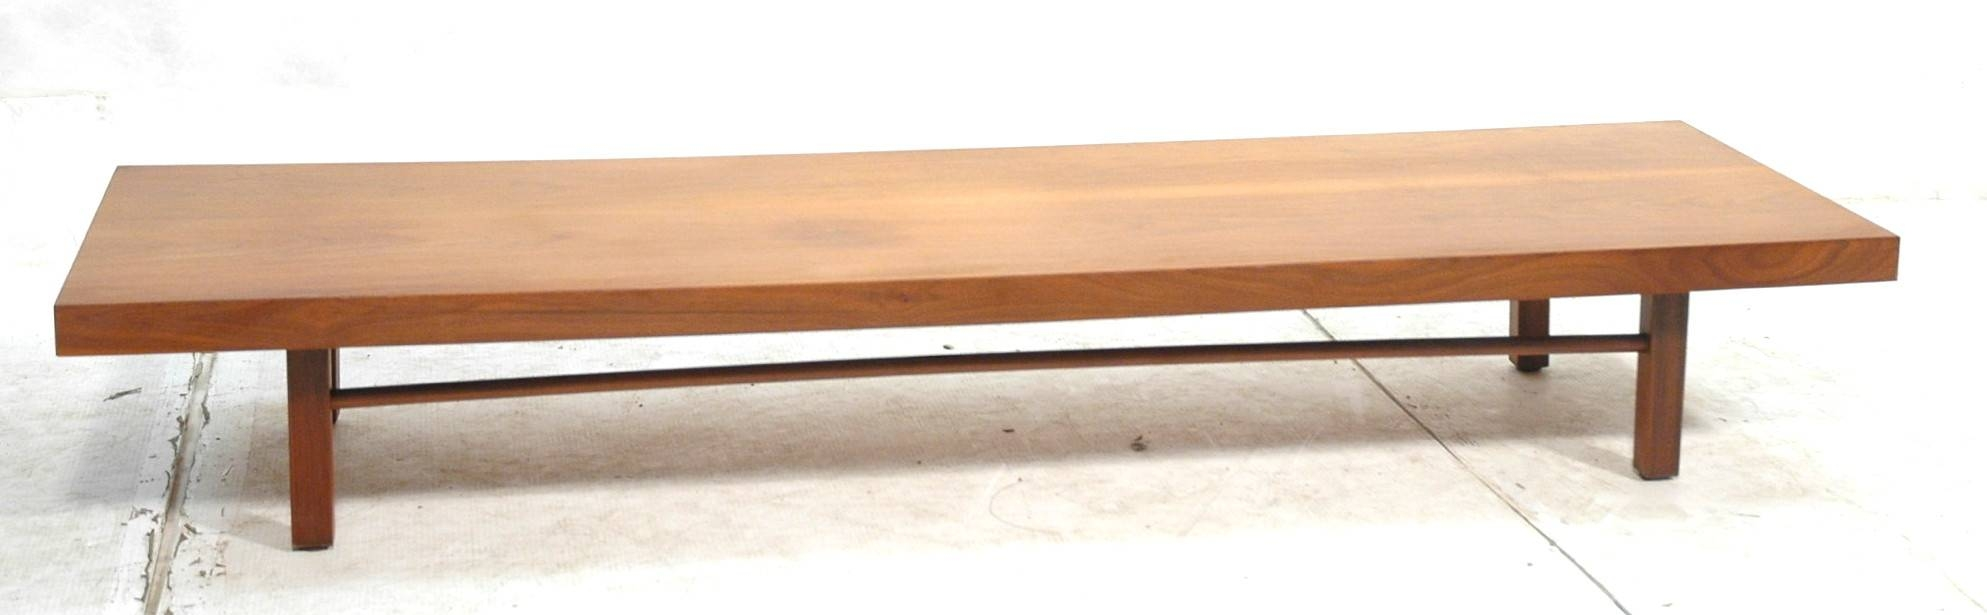 Very Low Coffee Table / Coffee Tables / Thippo Intended For Very Low Coffee Tables (View 1 of 15)